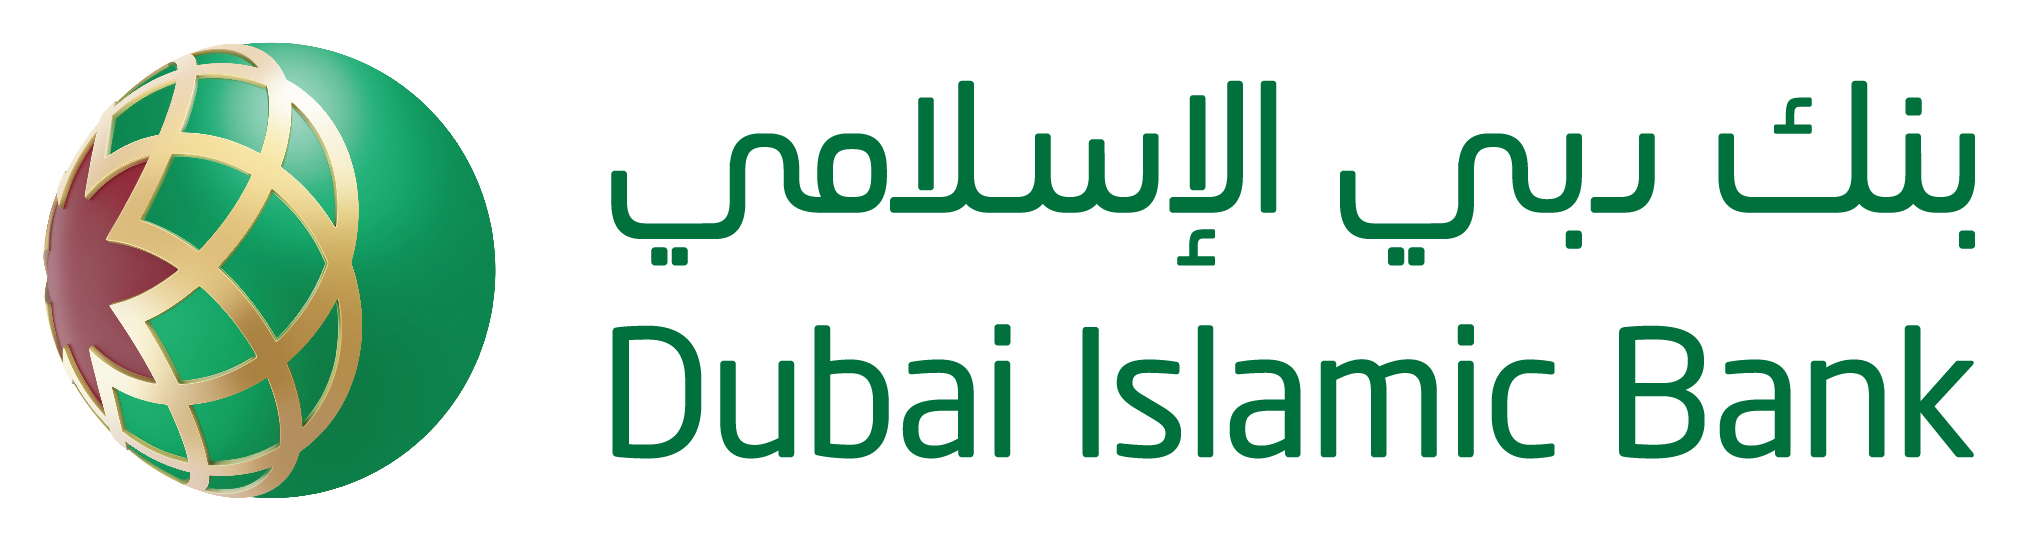 Dubai Islamic Bank - Al Islami Investment Deposit Account 9-months